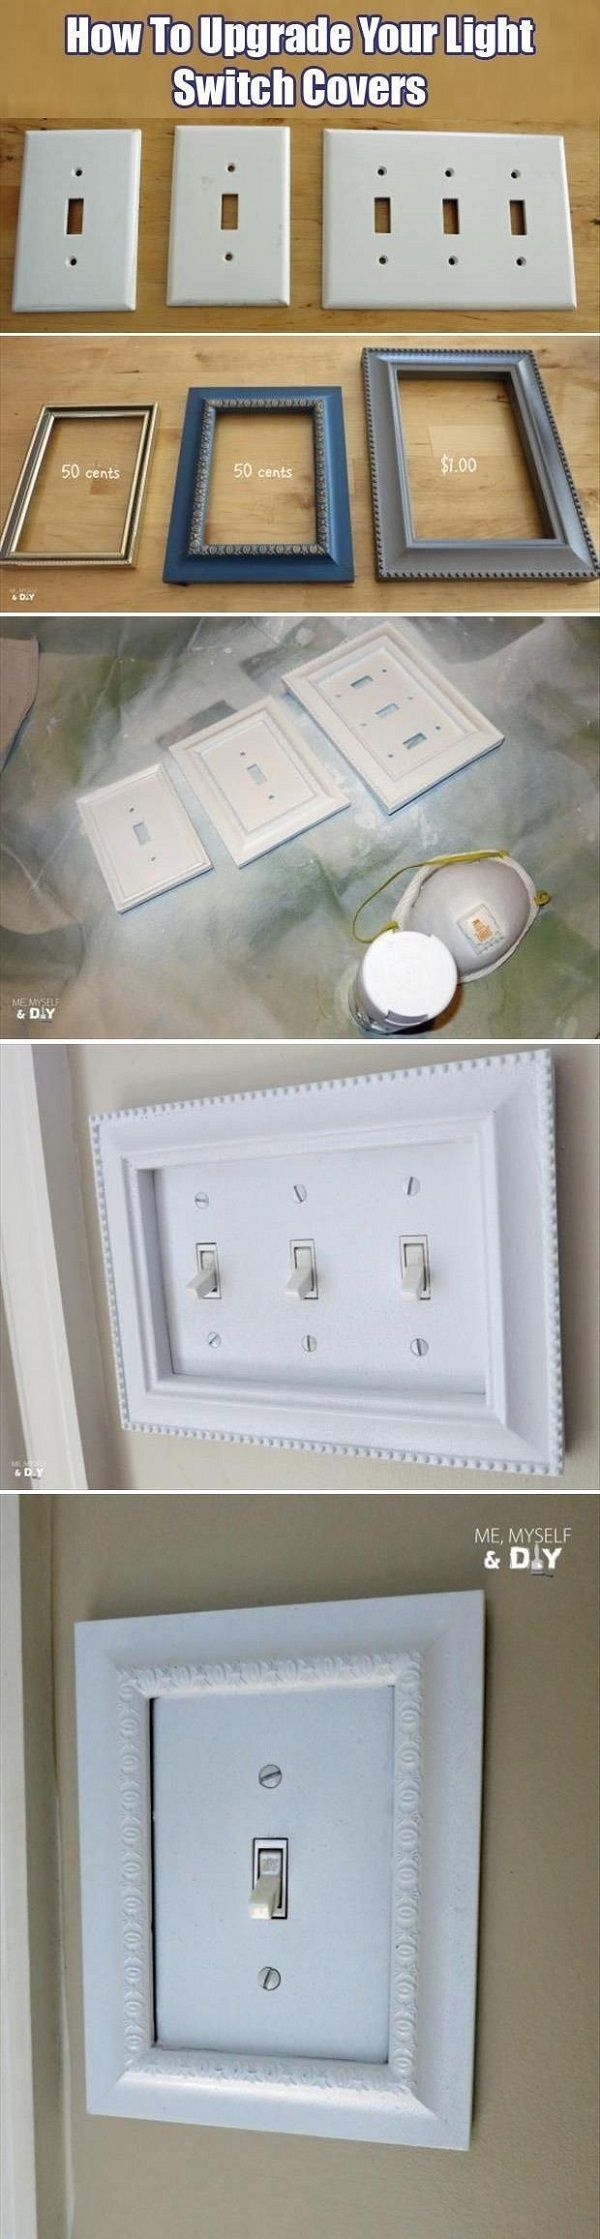 10 Great and Clever Bathroom Decorating ideas | Diy & Crafts Ideas Magazine